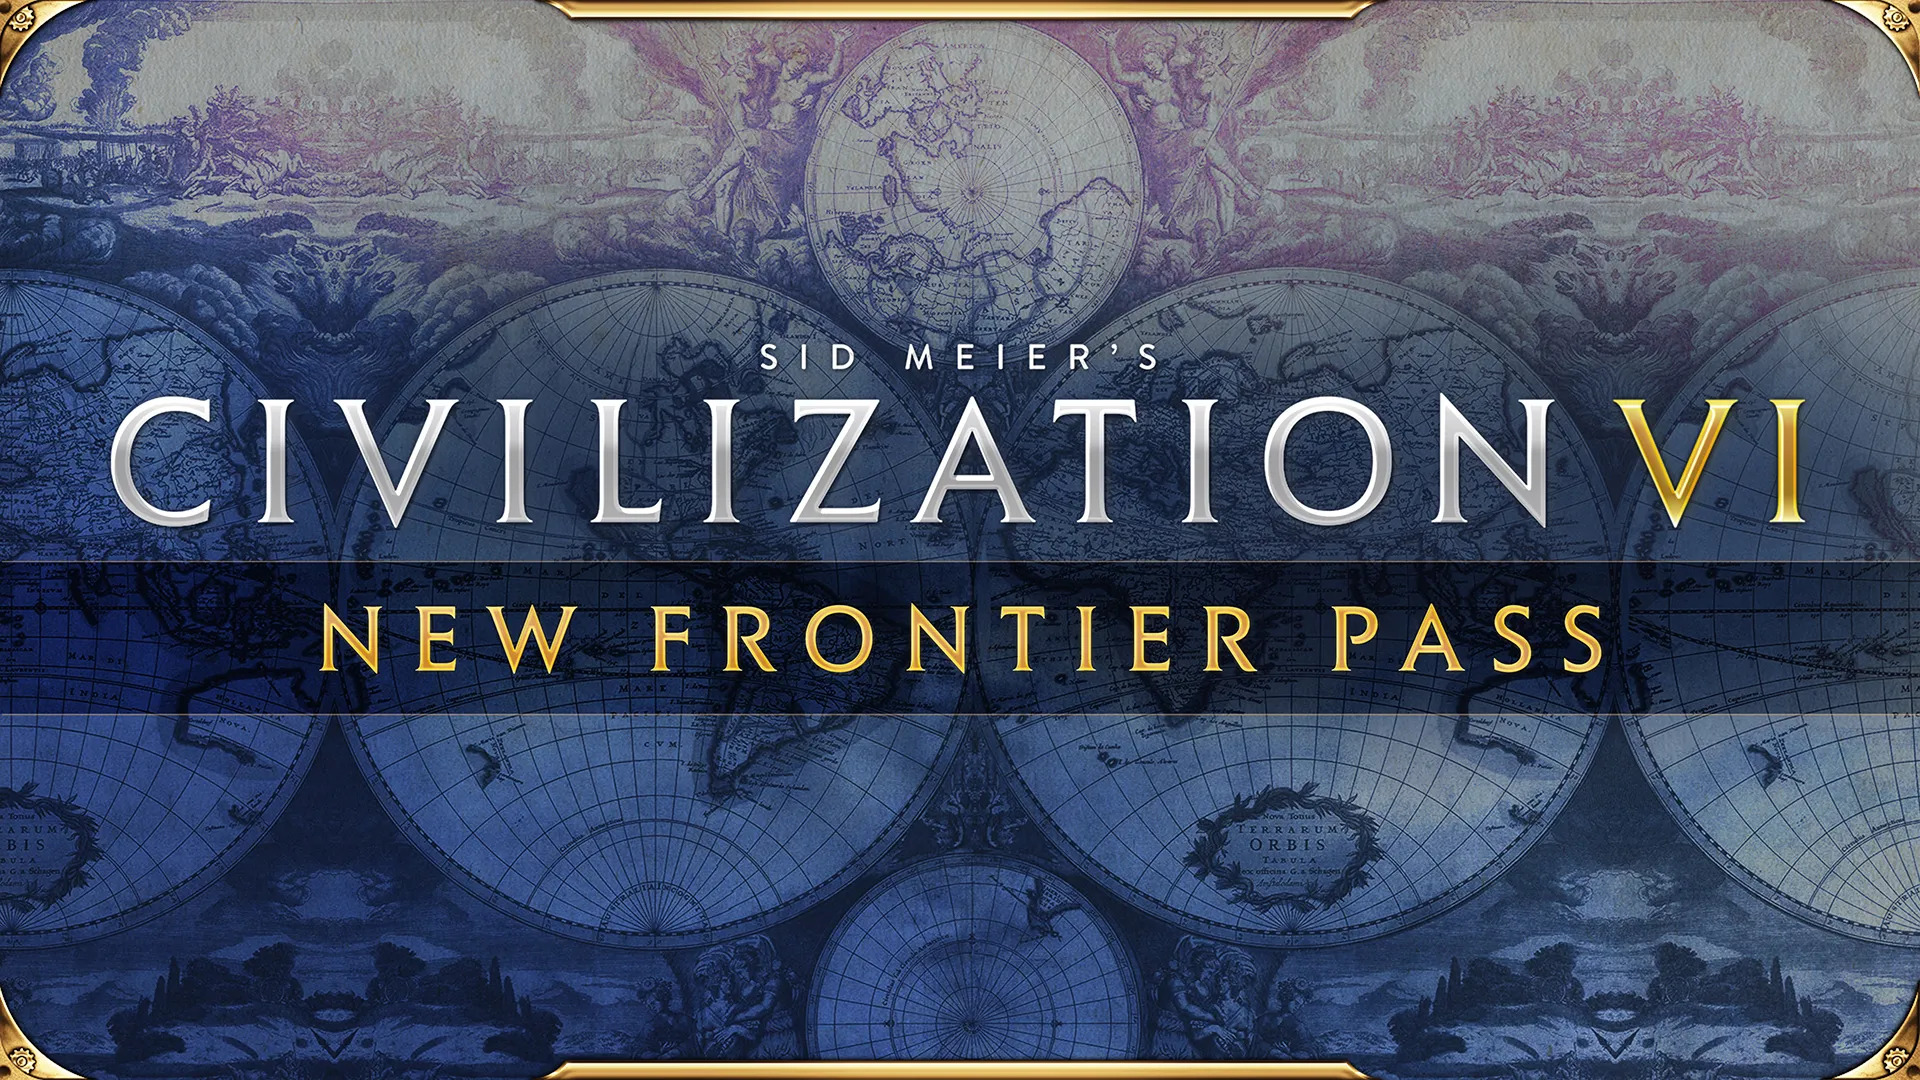 Civilization VI – New Frontier Pass Coming May 22